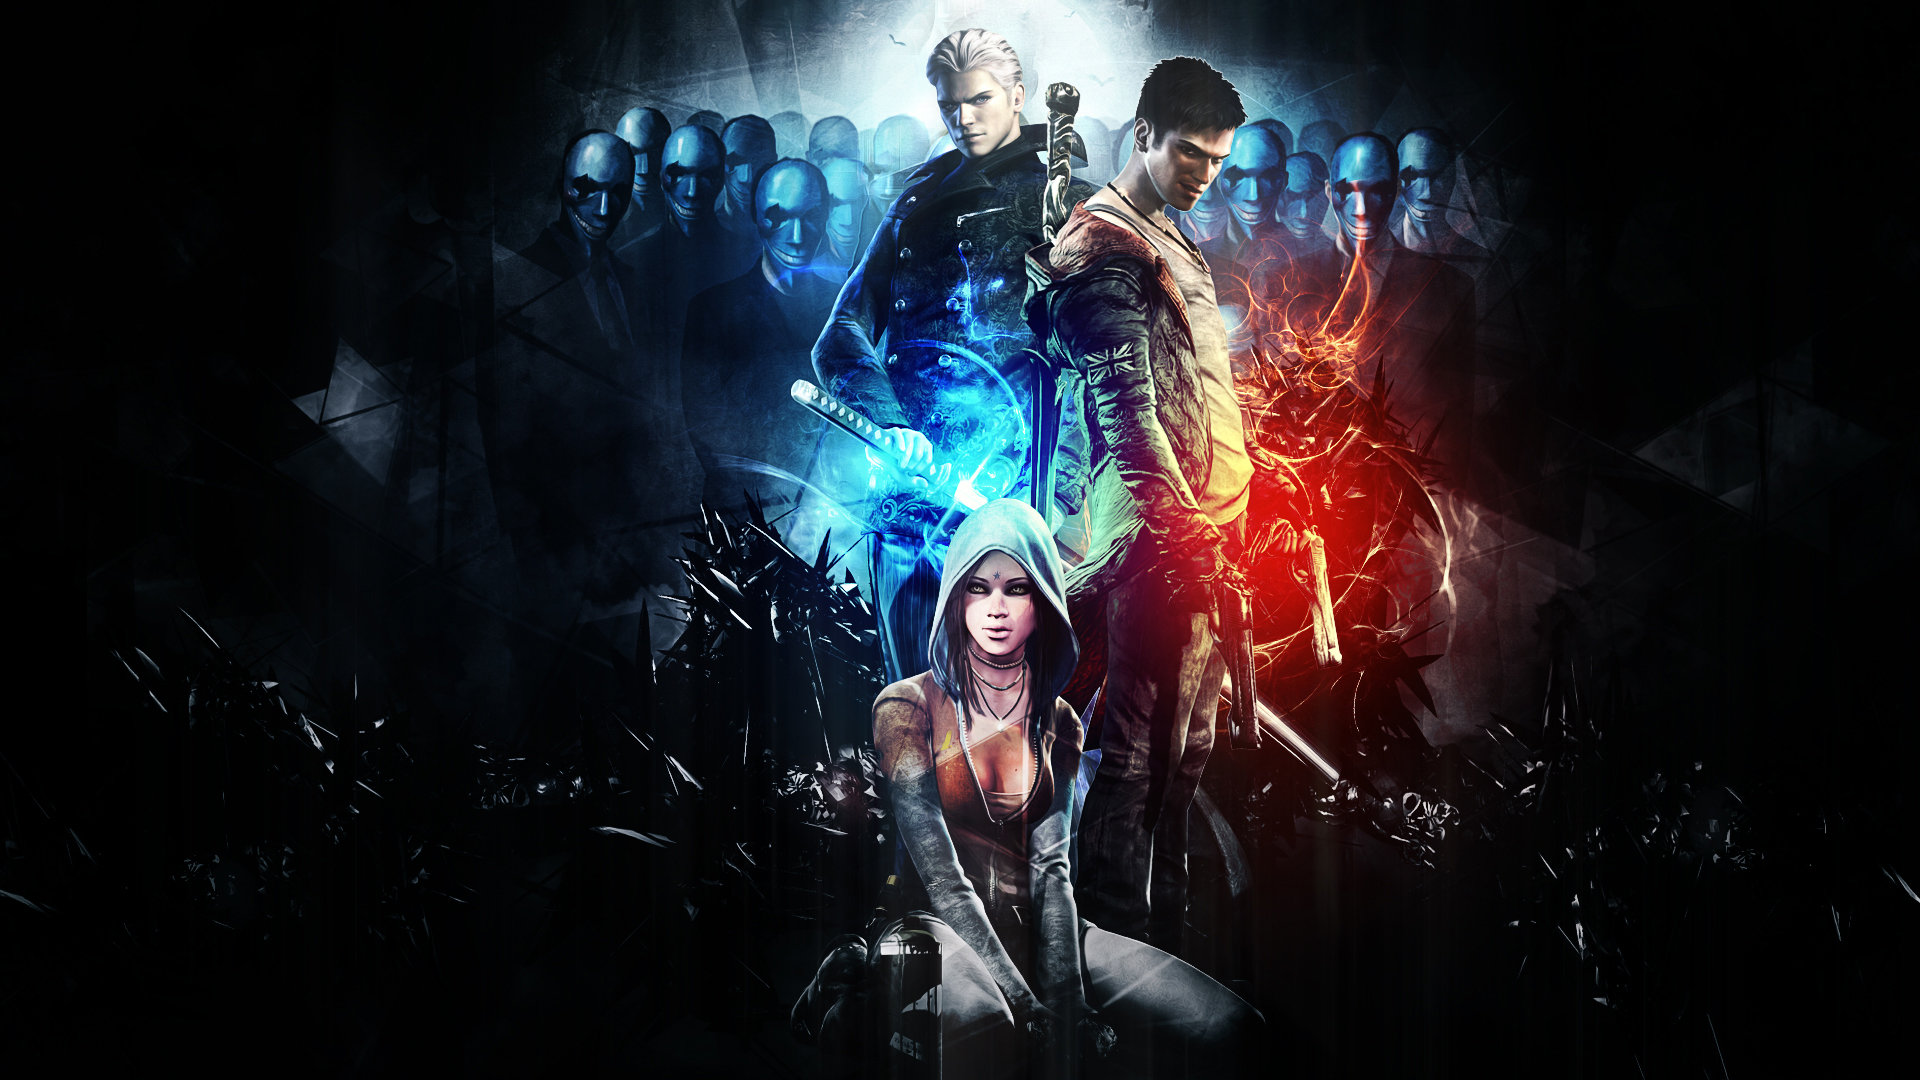 Vergil Devil May Cry Wallpapers 1920x1080 Full Hd 1080p